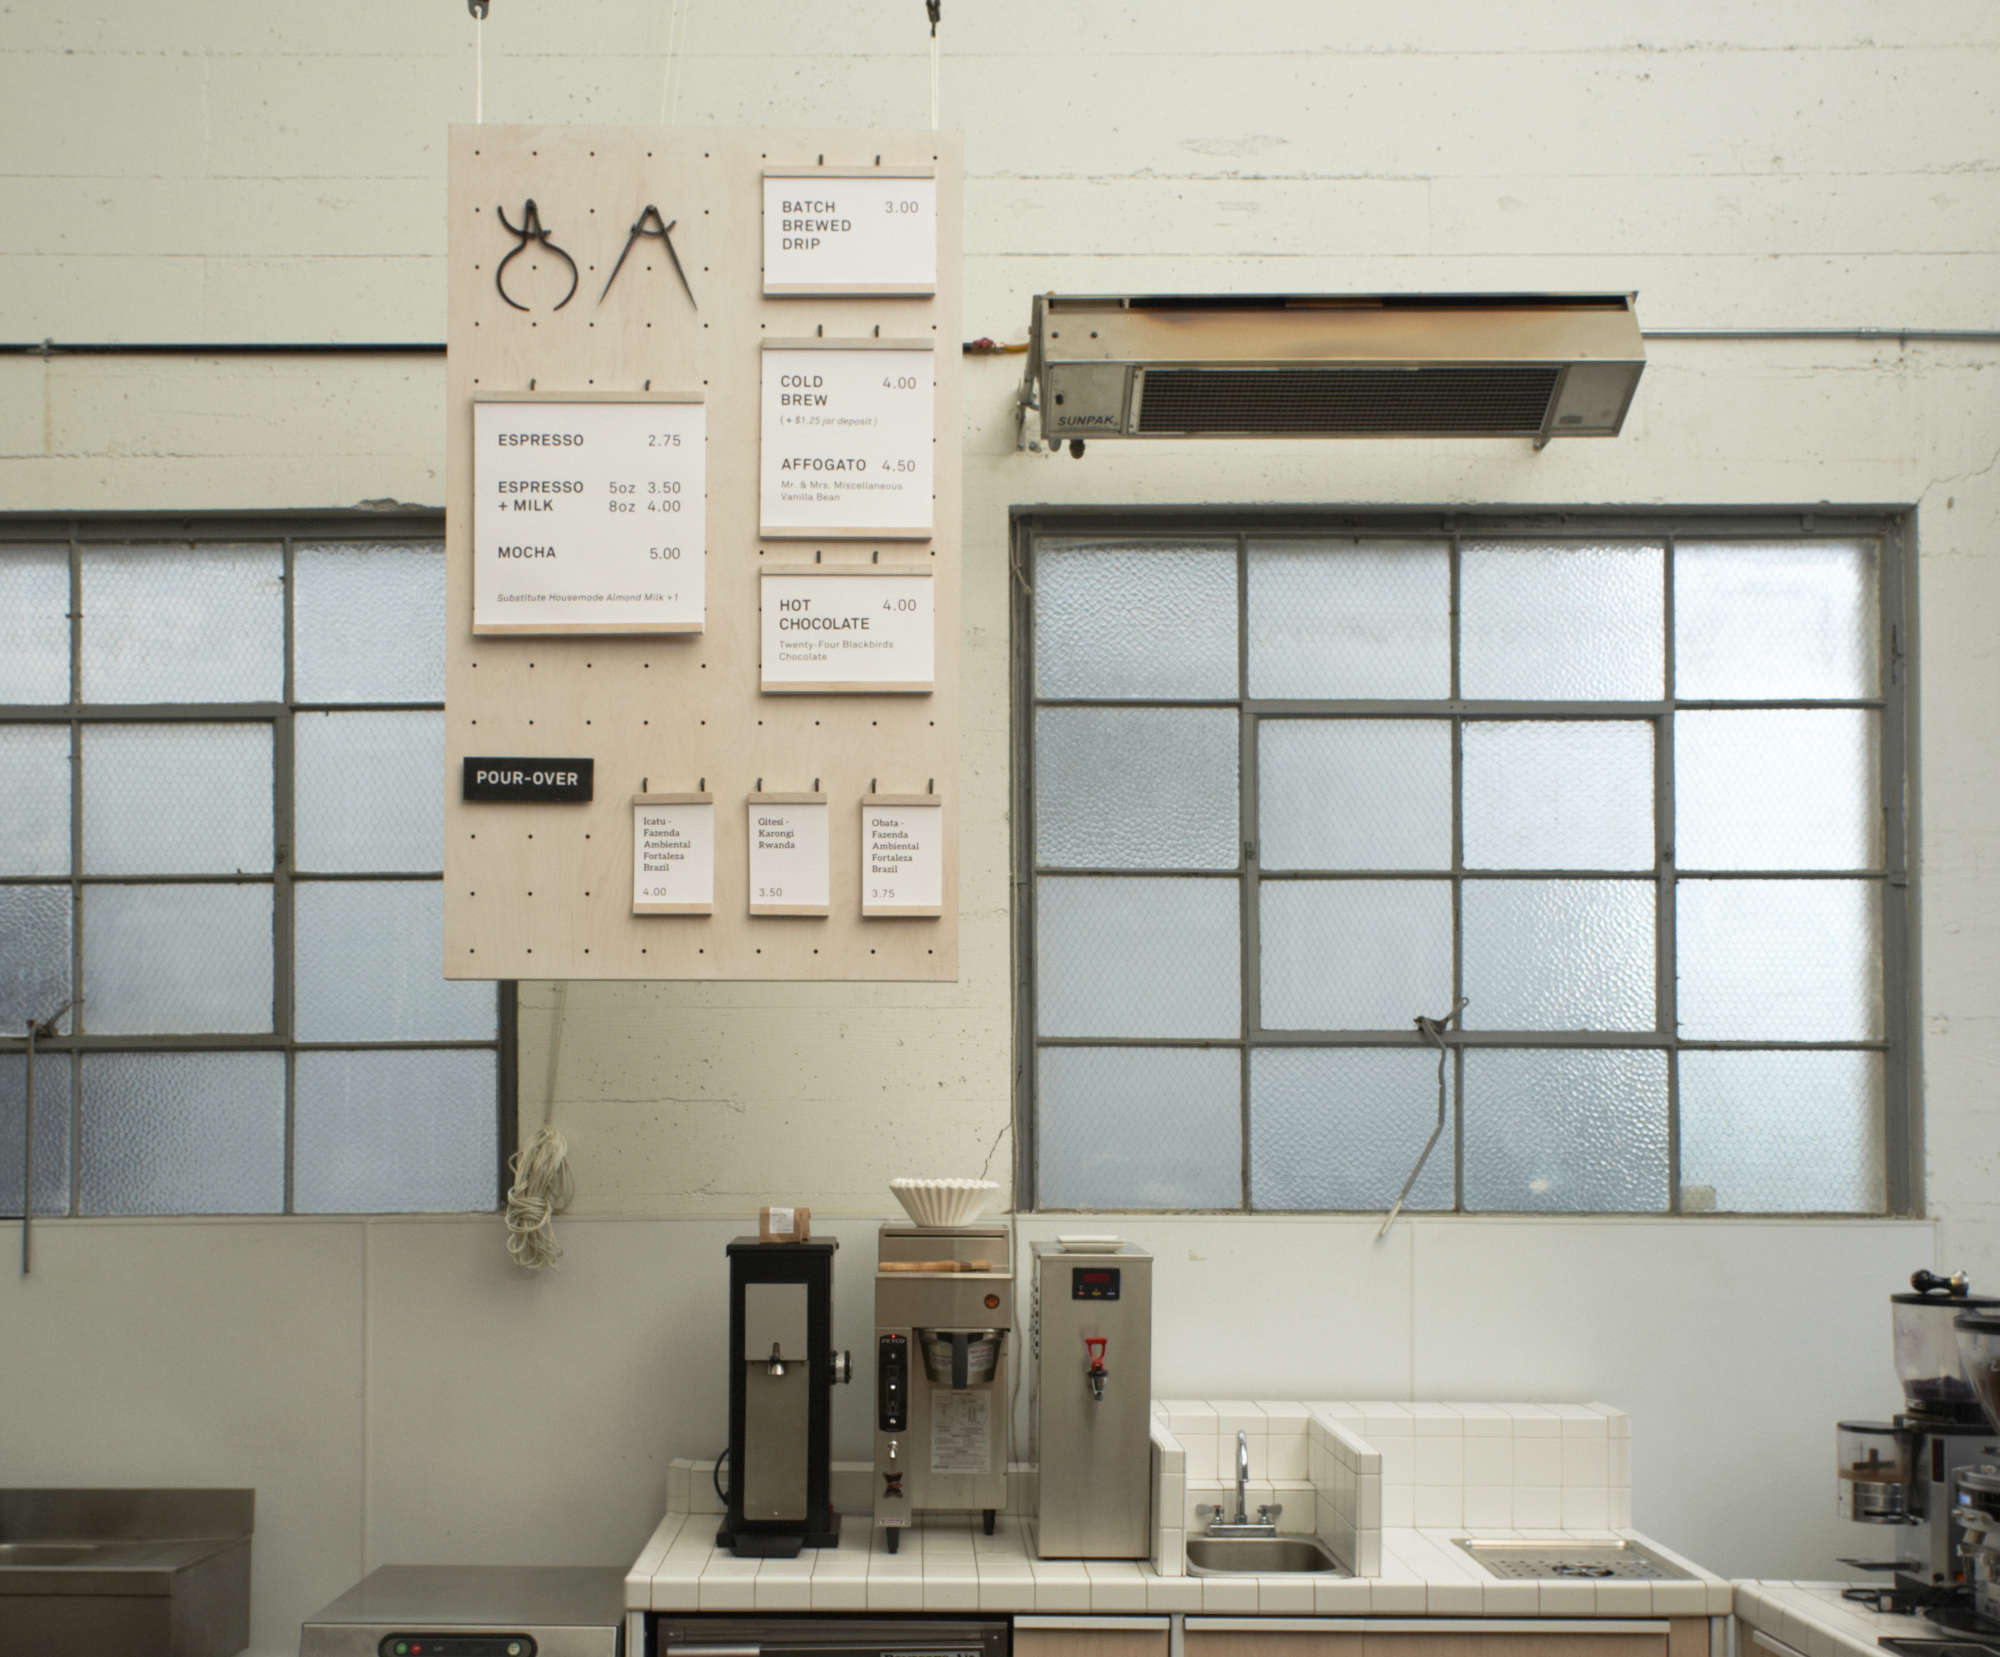 Menu at Front Cafe by Yvonne Mouser, Photo by James Newman